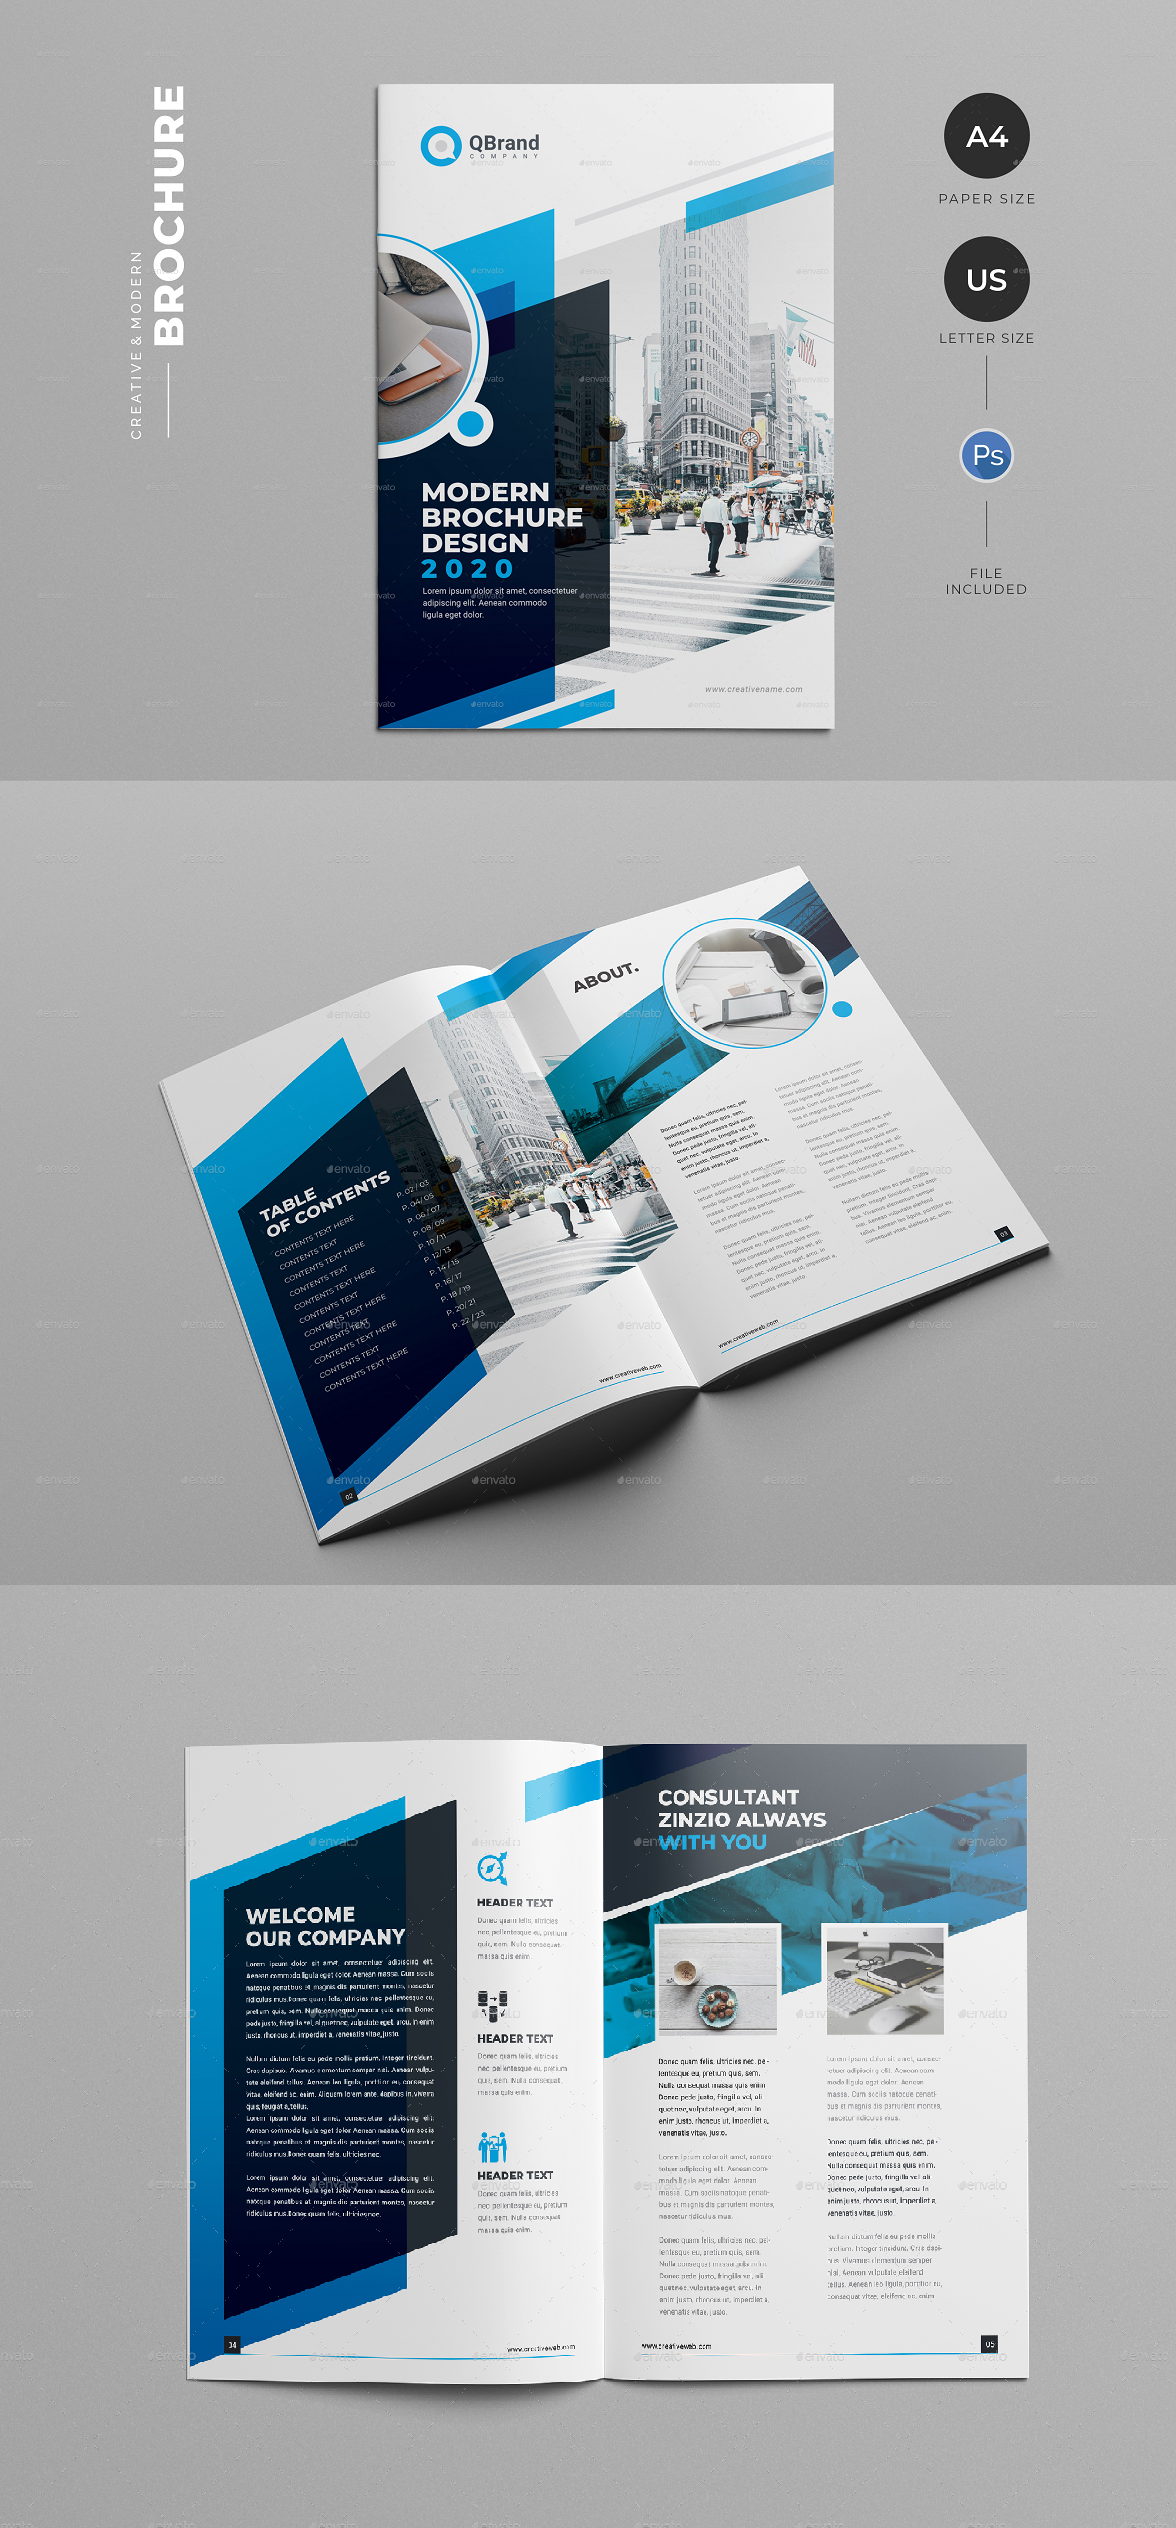 Creative & Modern Brochure, H I G H L I G H T S 24 pages PSD File Document ( A4 Paper & US Letter Size ) with Bleed Compatibility with Adobe Photoshop Well Layered & Organized everything is editable color/text & Photo 100% Scalable All Files 300DPI CMYK Ready to print Free font used Need help? Send us an email or comment. I N C L U D E D 12 PSD file in A4 Size (Adobe Photoshop CS3 version) 12 PSD file in US Letter Size (Adobe Photoshop CS3 version)